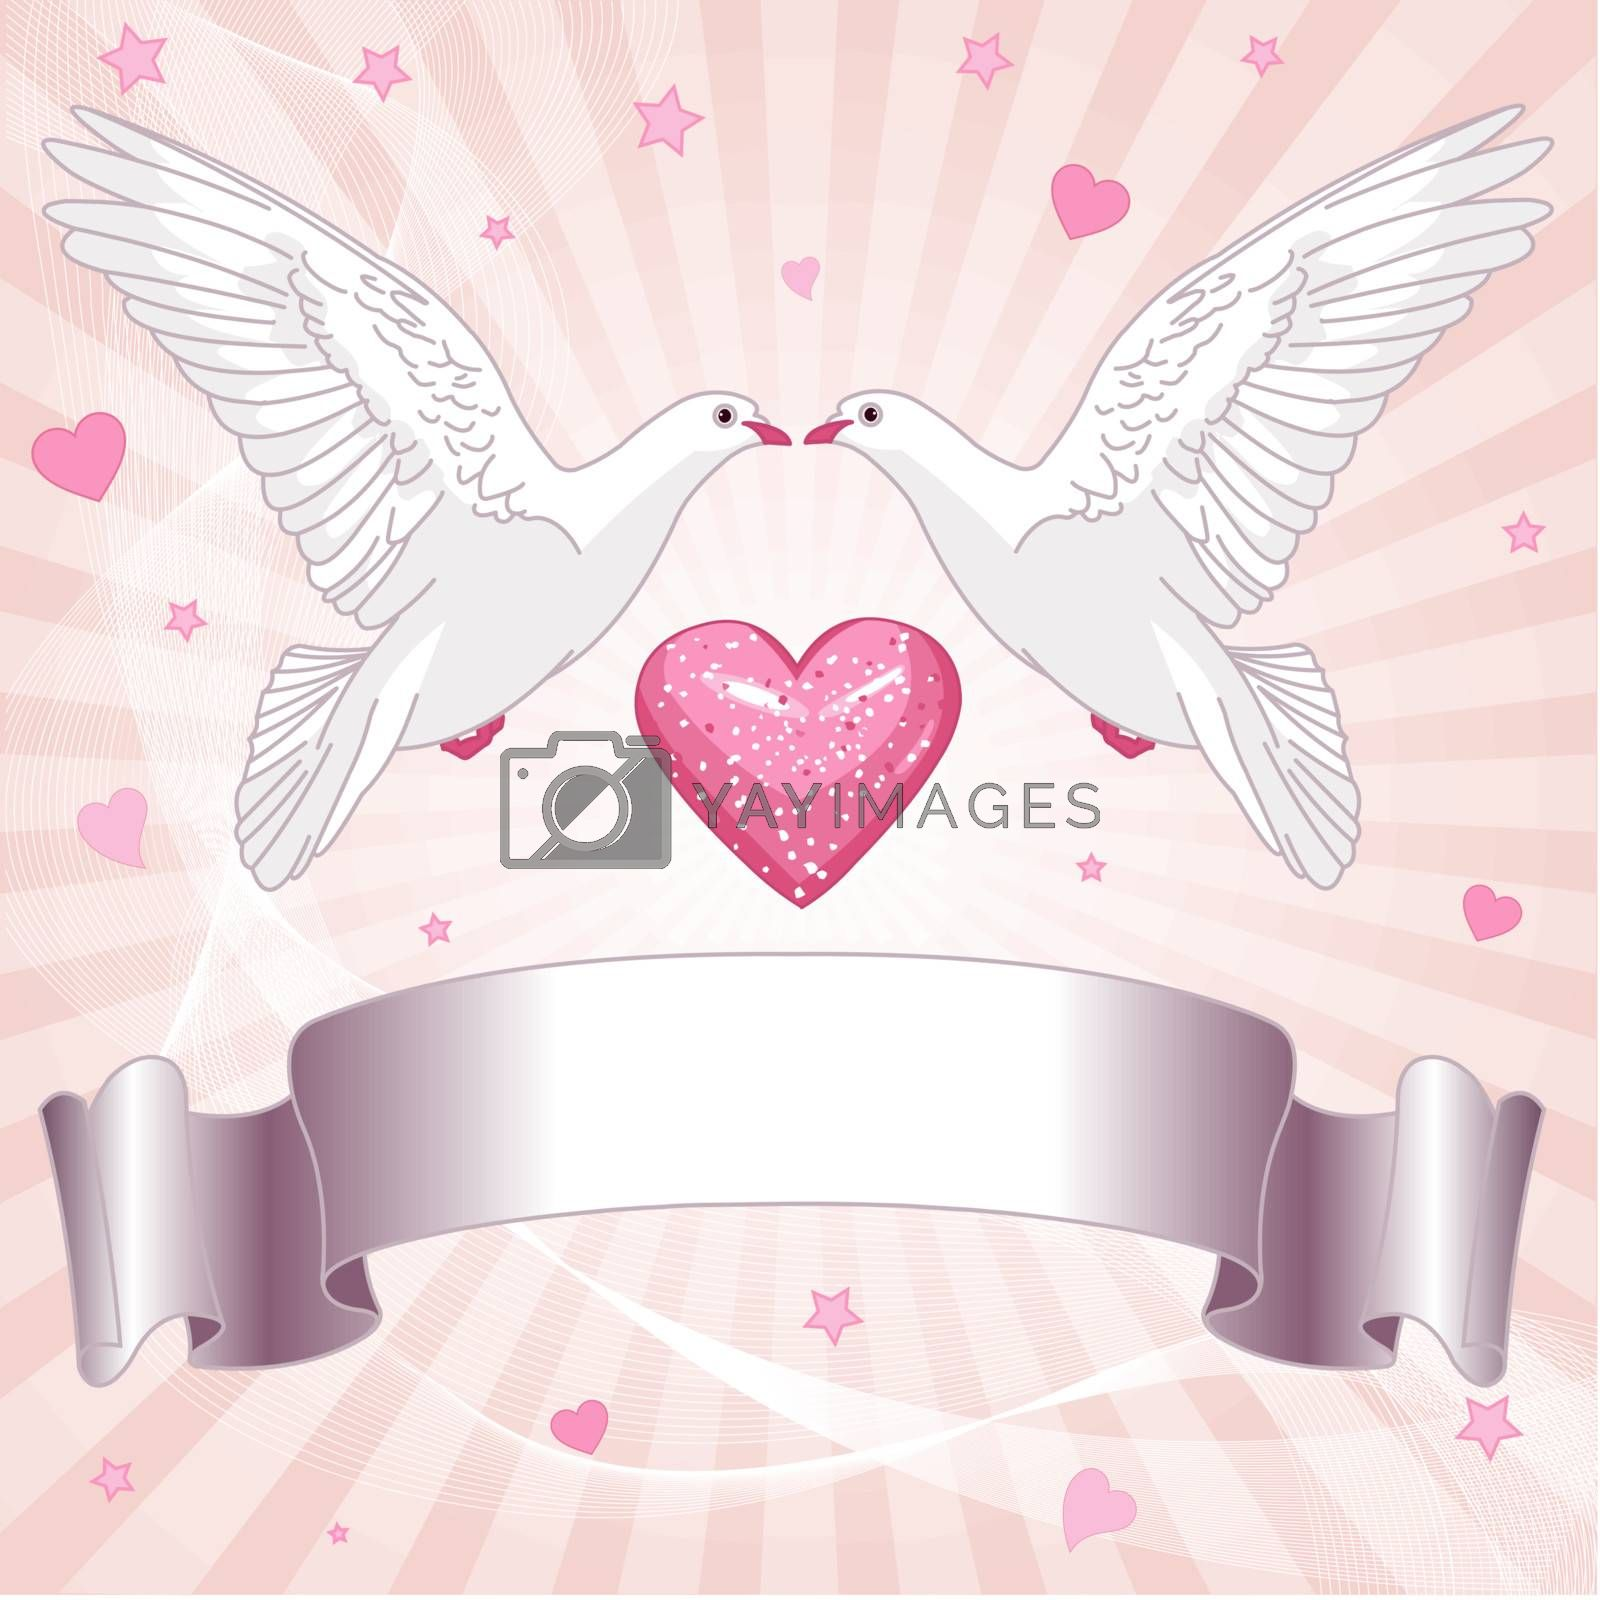 Wedding background  for invitations and announcements